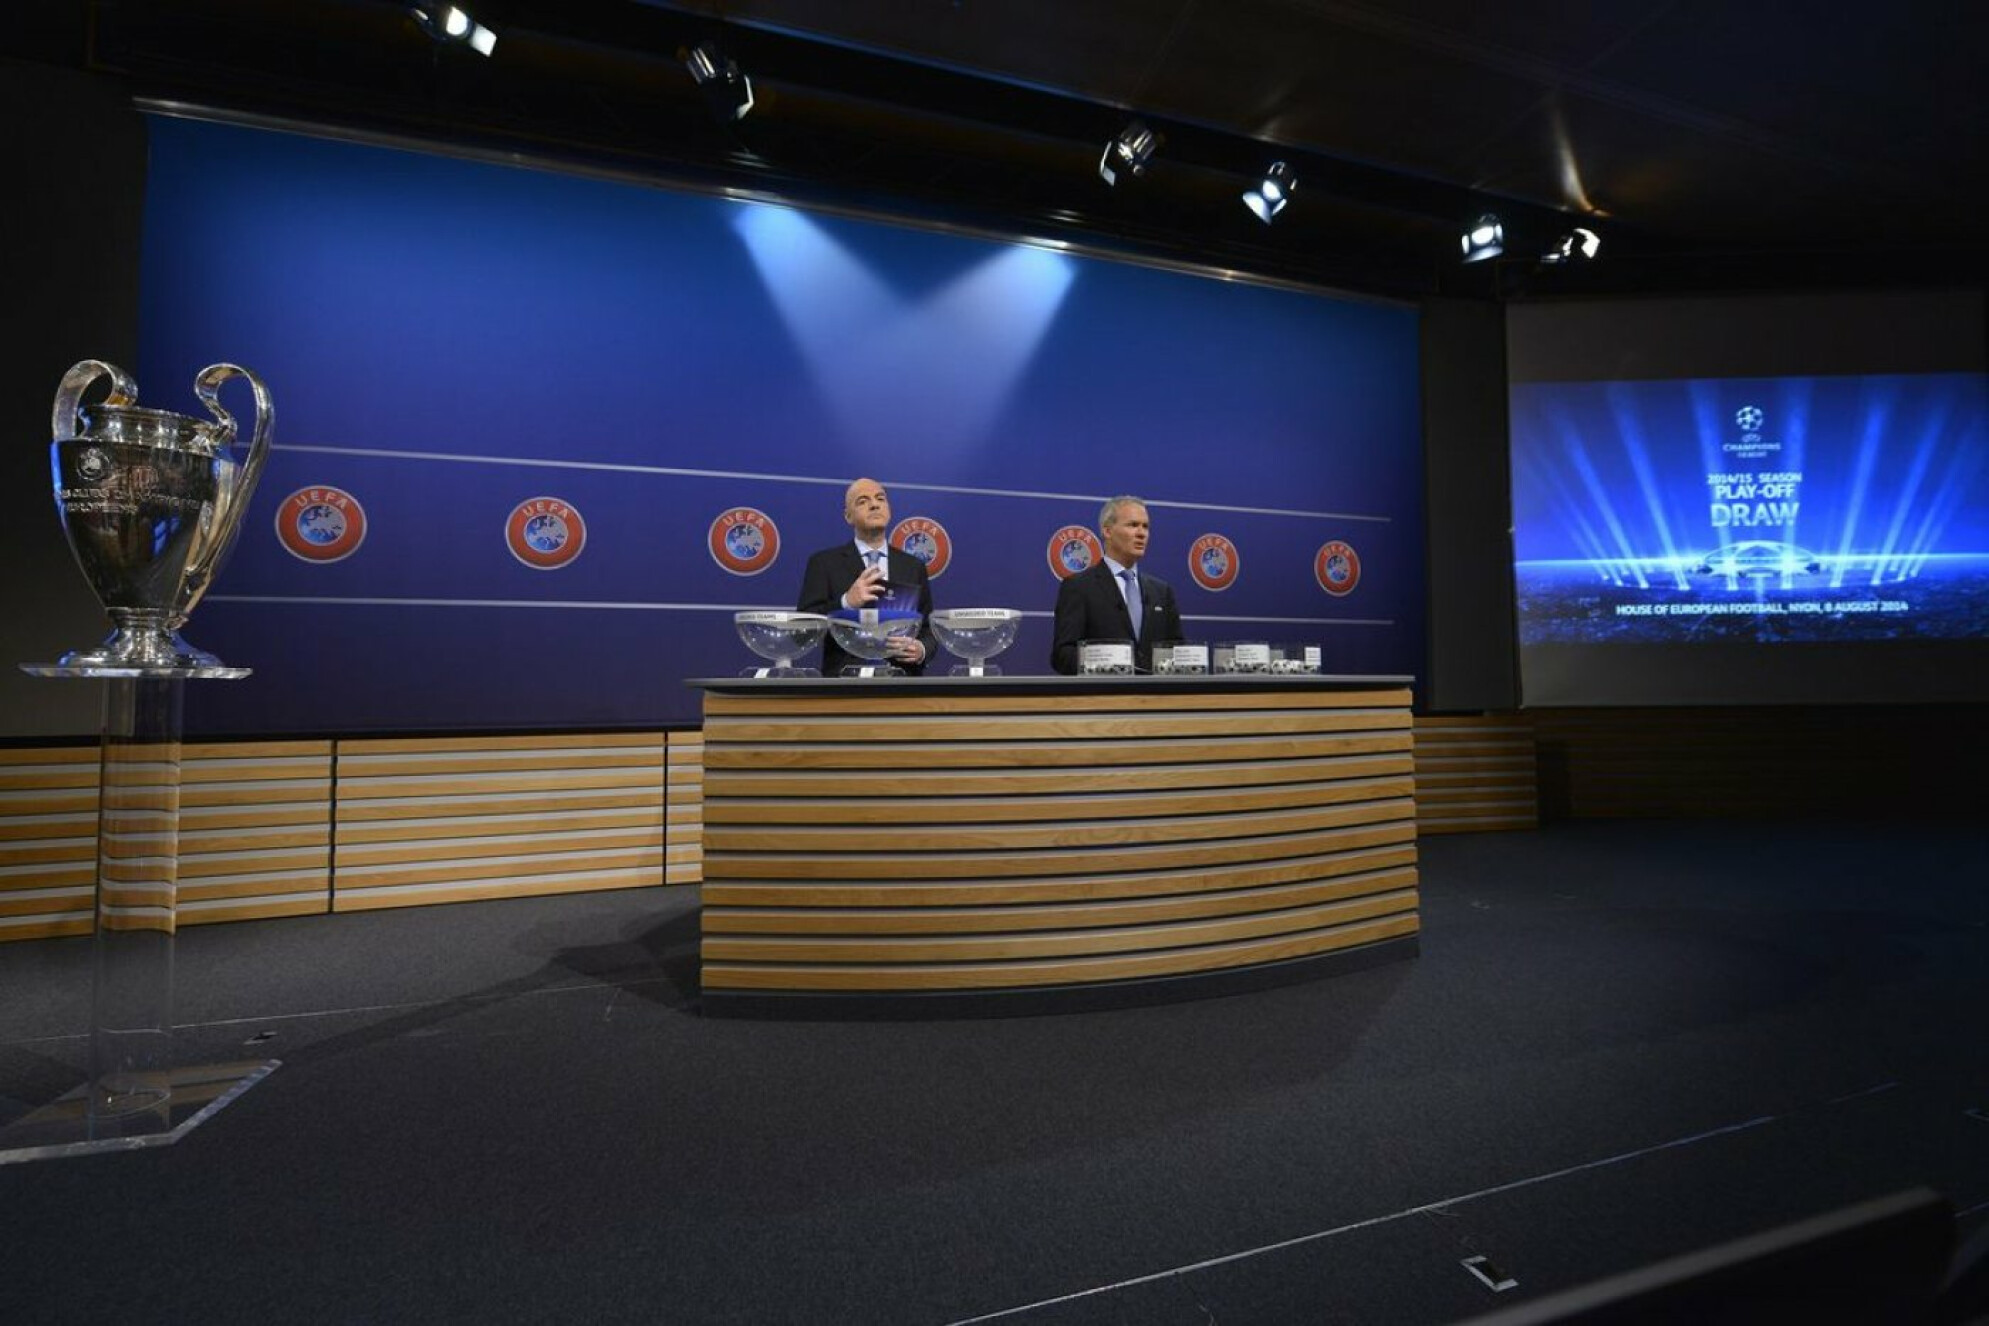 When and where is the UEFA Champions League Round of 16 draw?